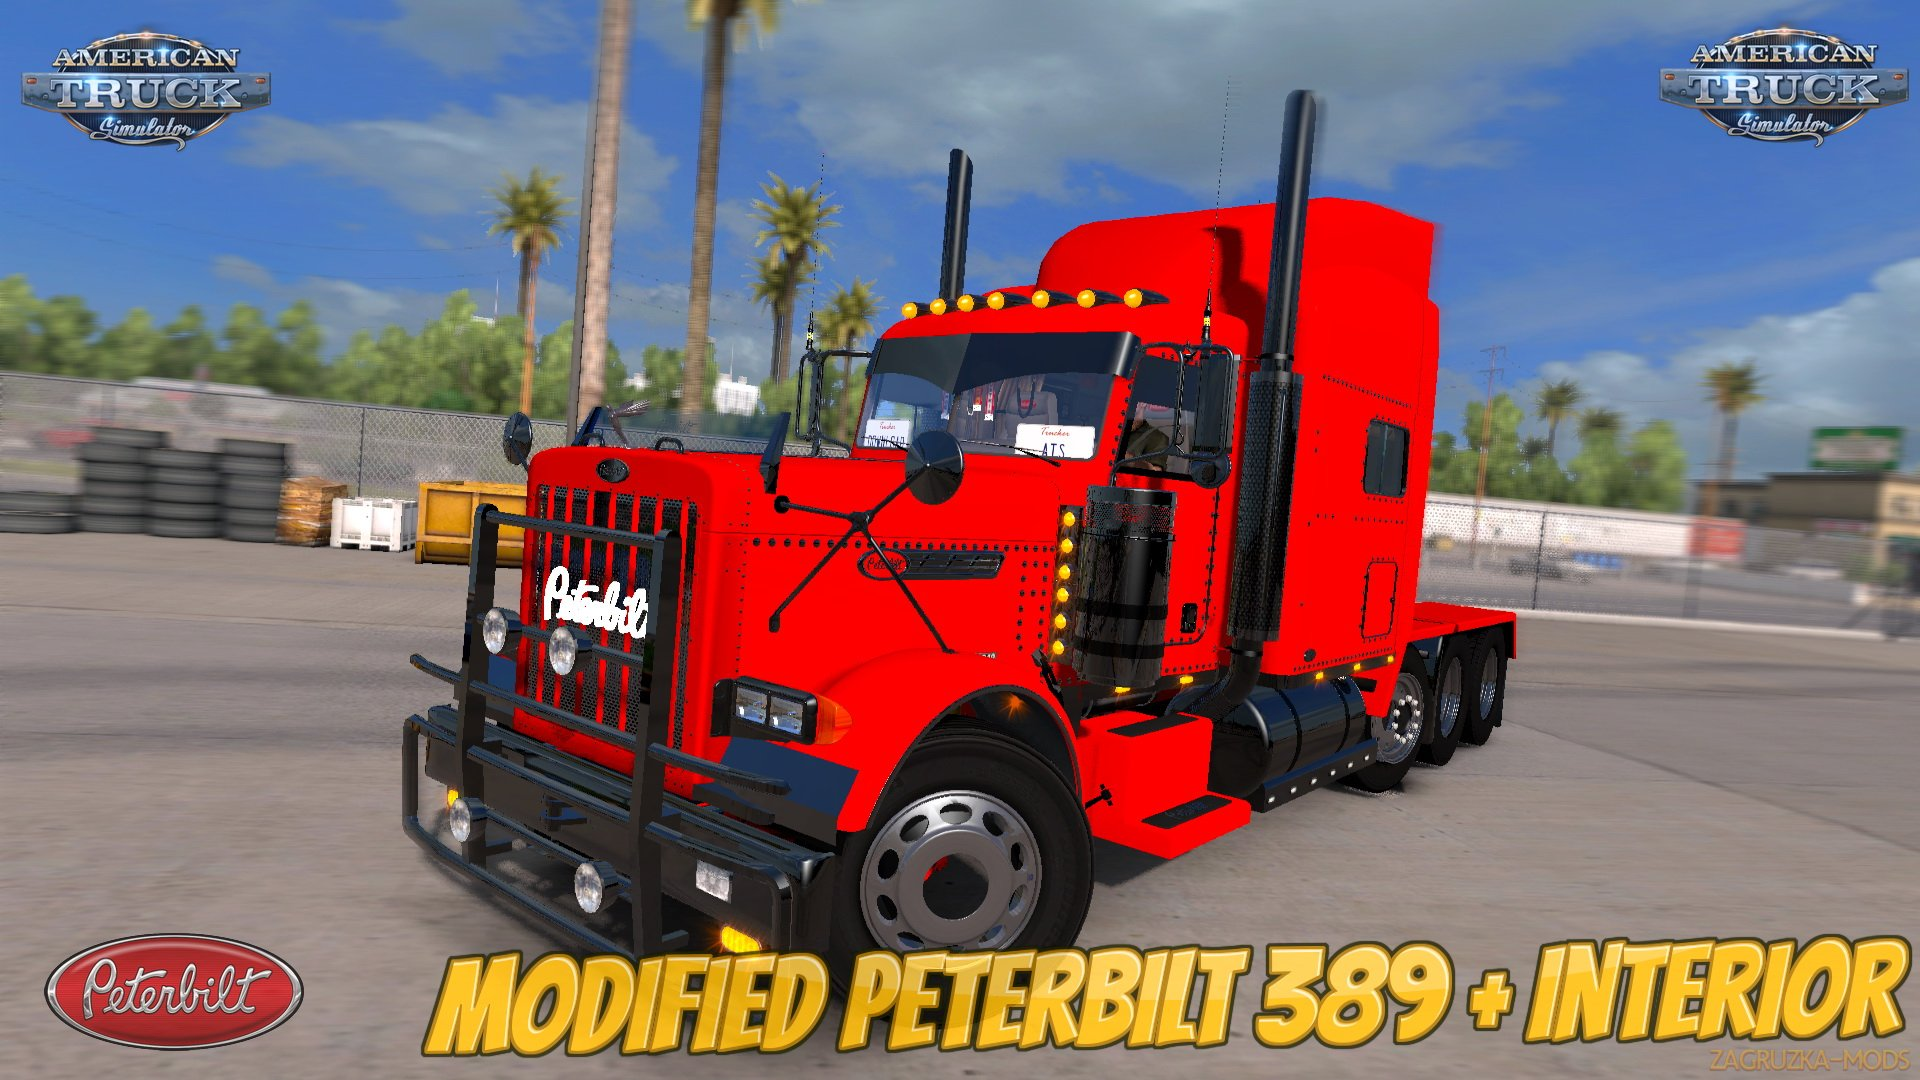 Modified Peterbilt 389 + Interior v2.1 (1.28.x) for ATS